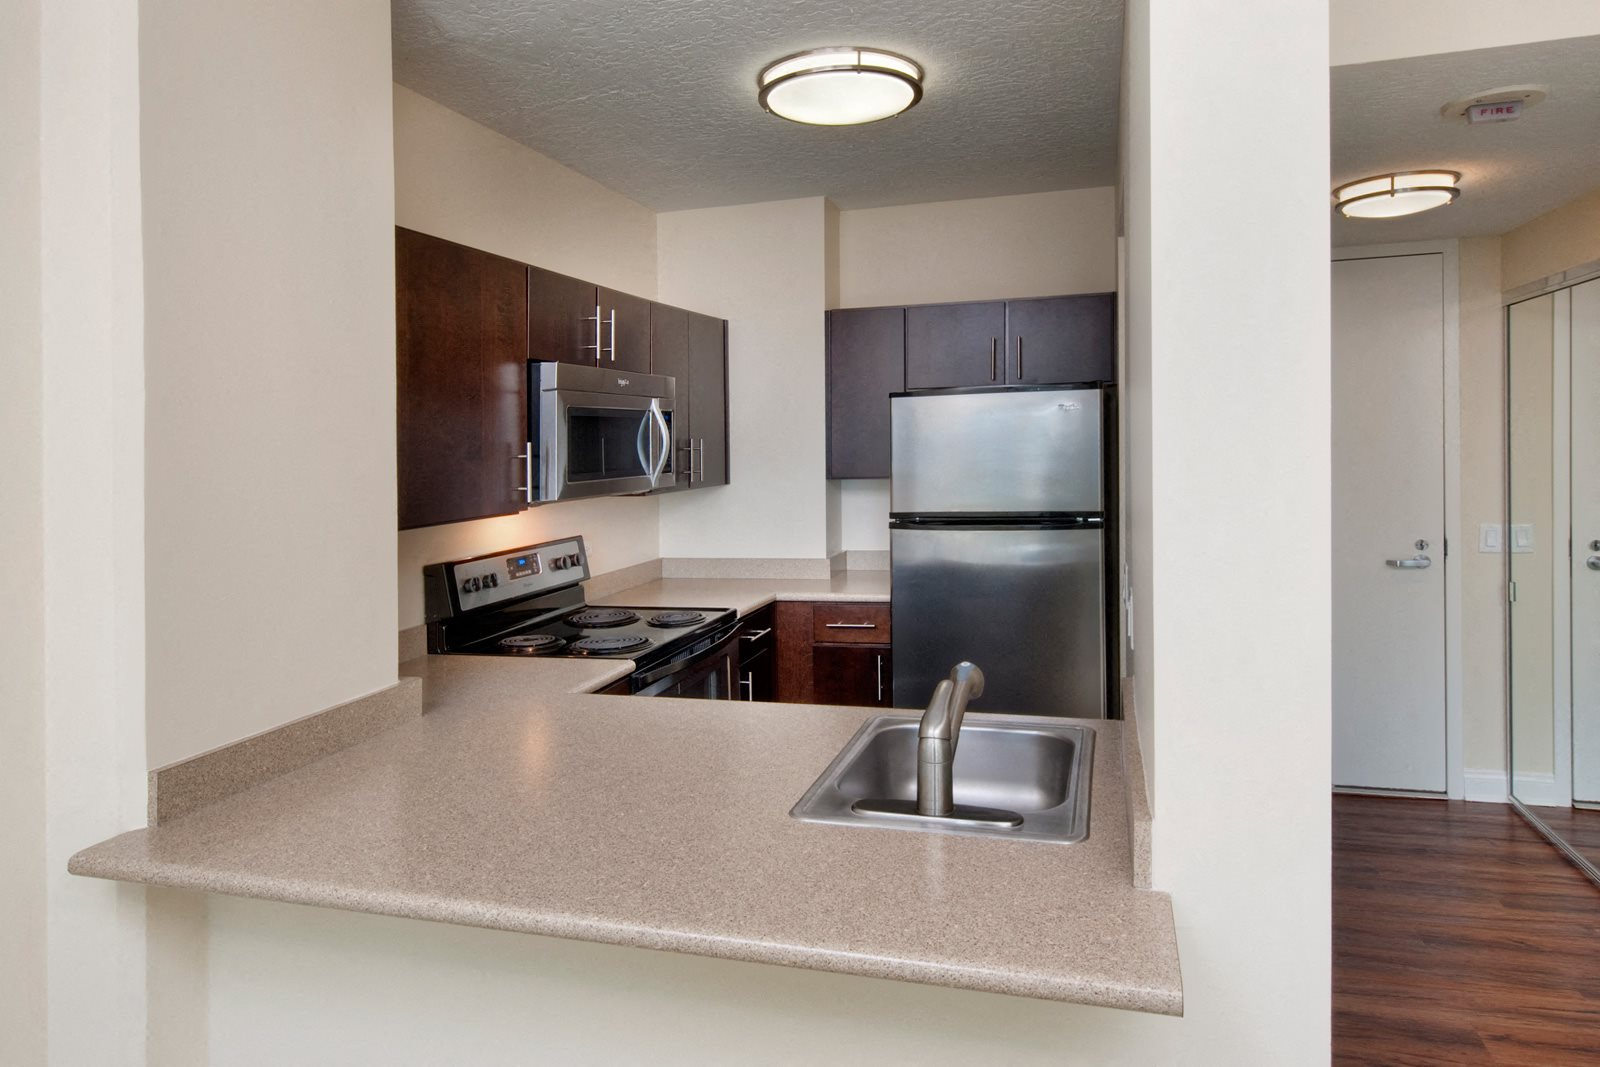 Open Kitchens at Renaissance Tower, 501 W. Olympic Boulevard, CA